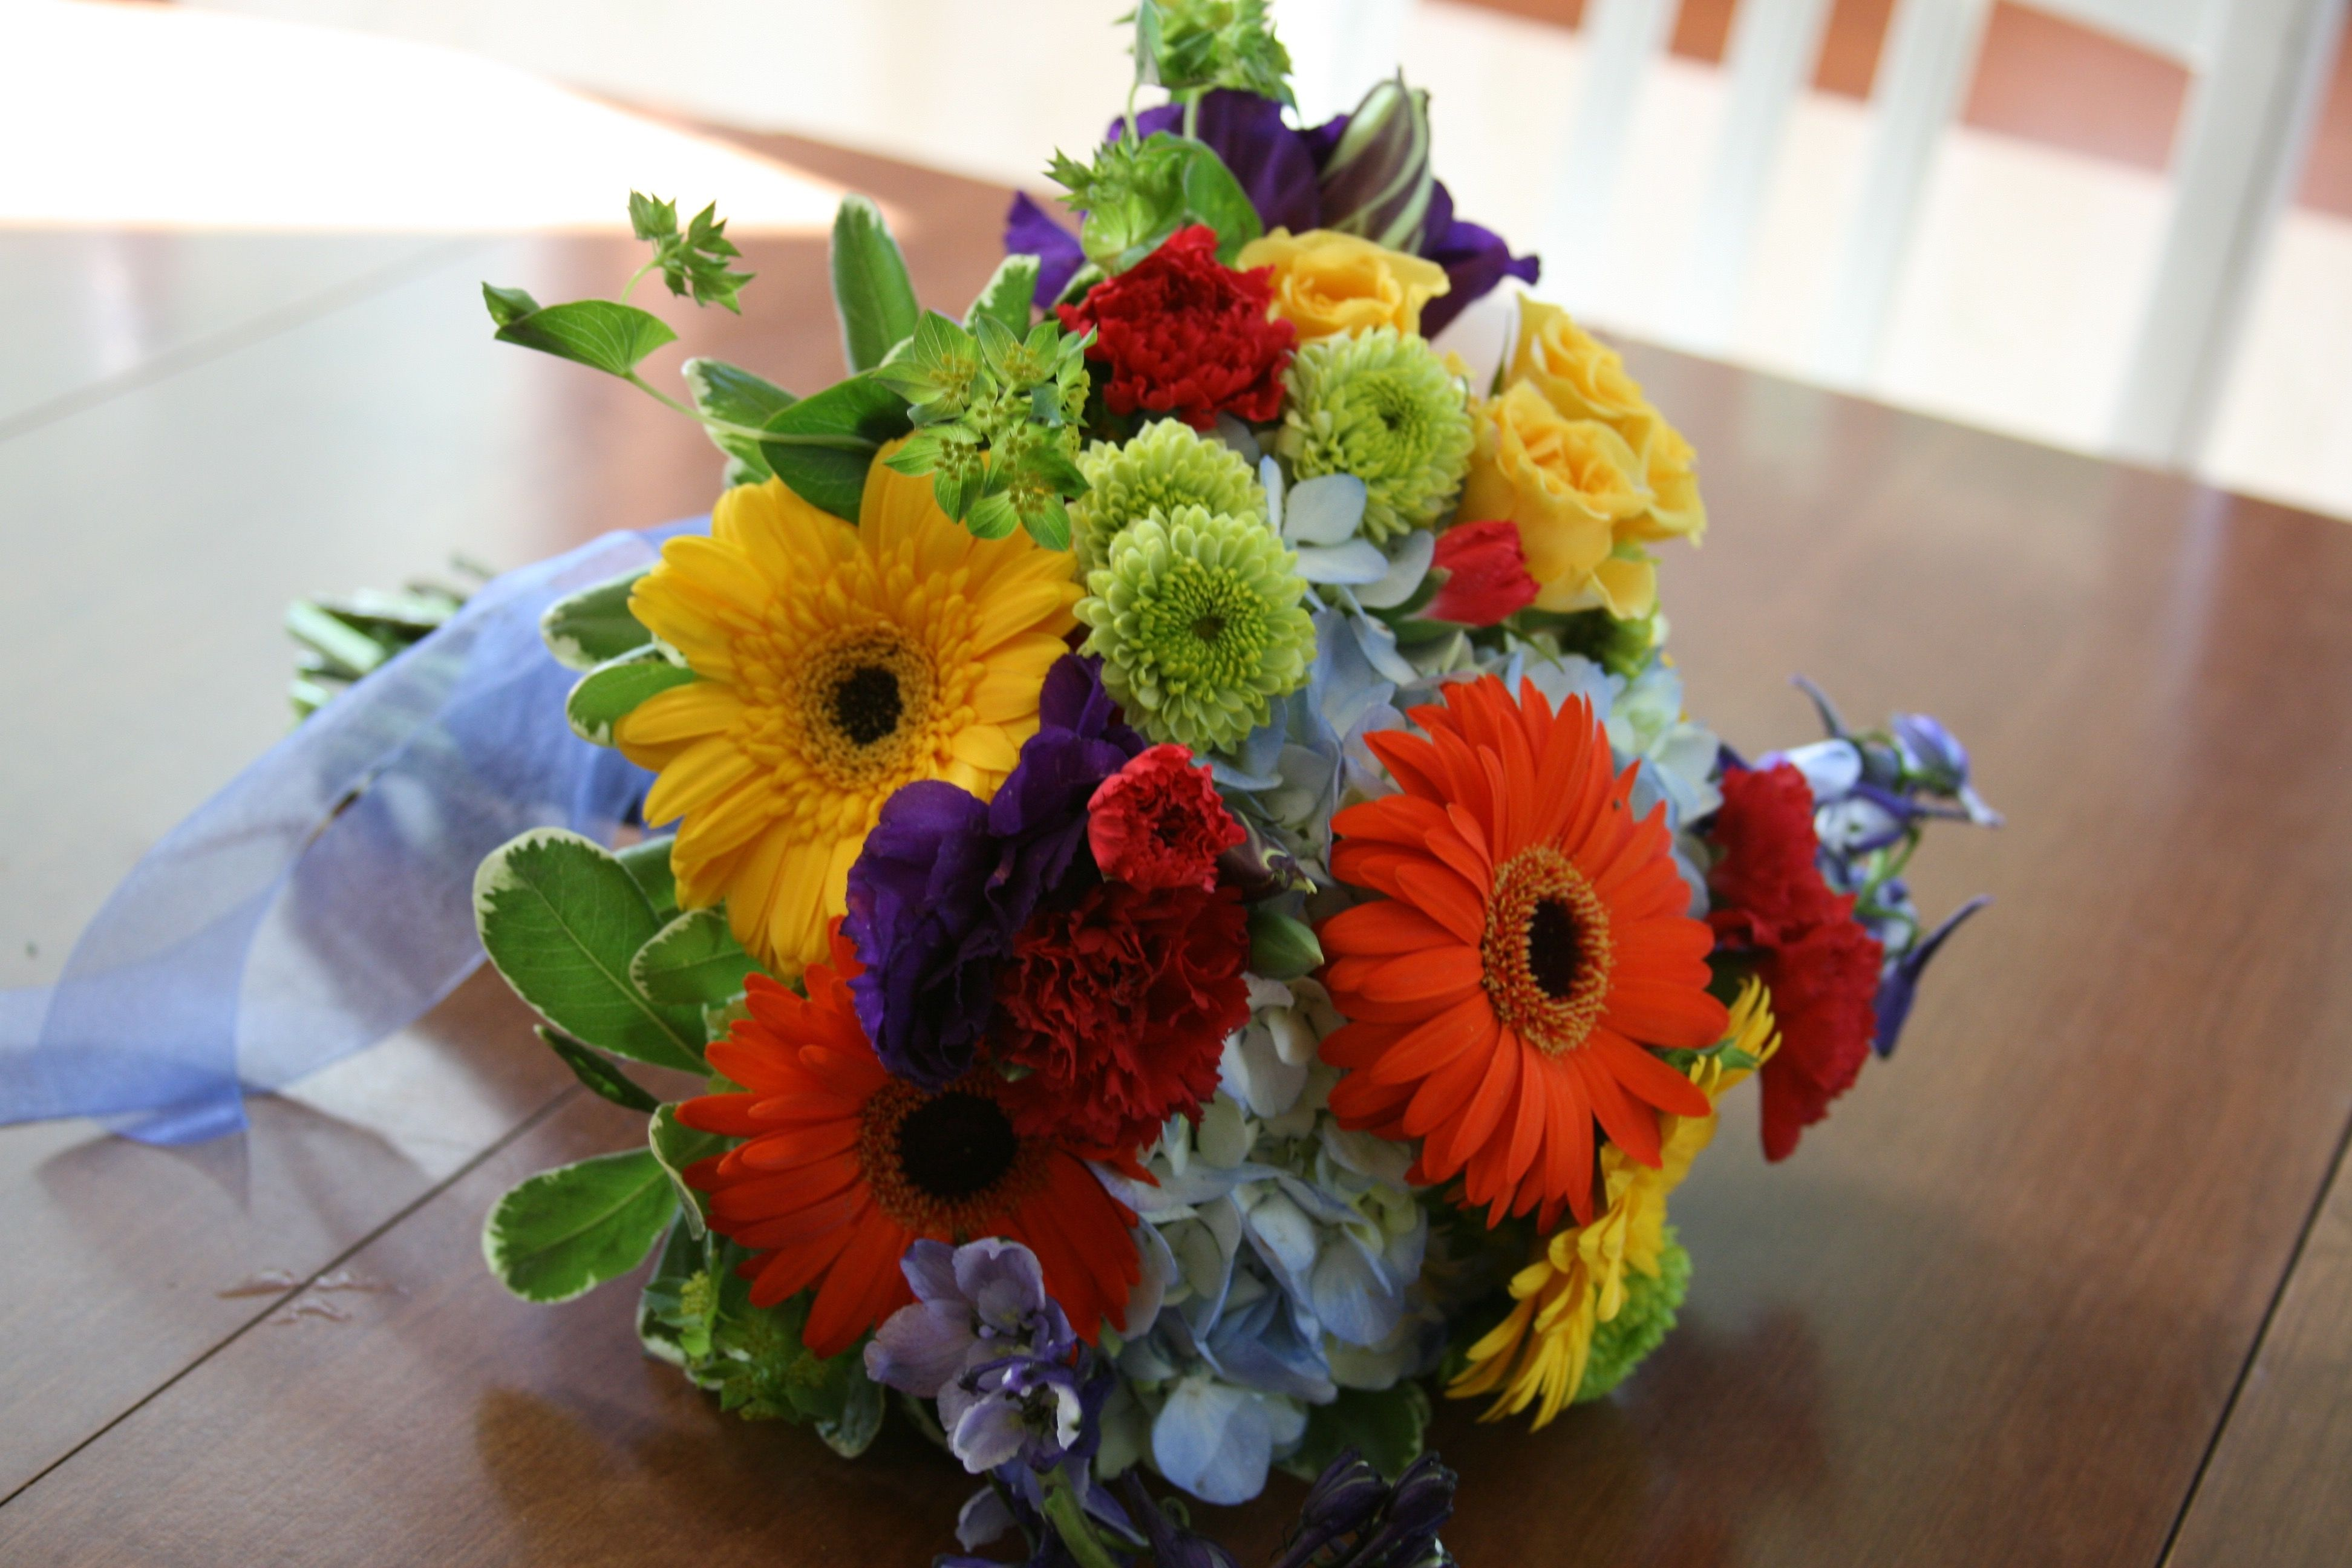 EVERY COLOR OF THE RAINBOW - lots of texture and variety of flowers ...